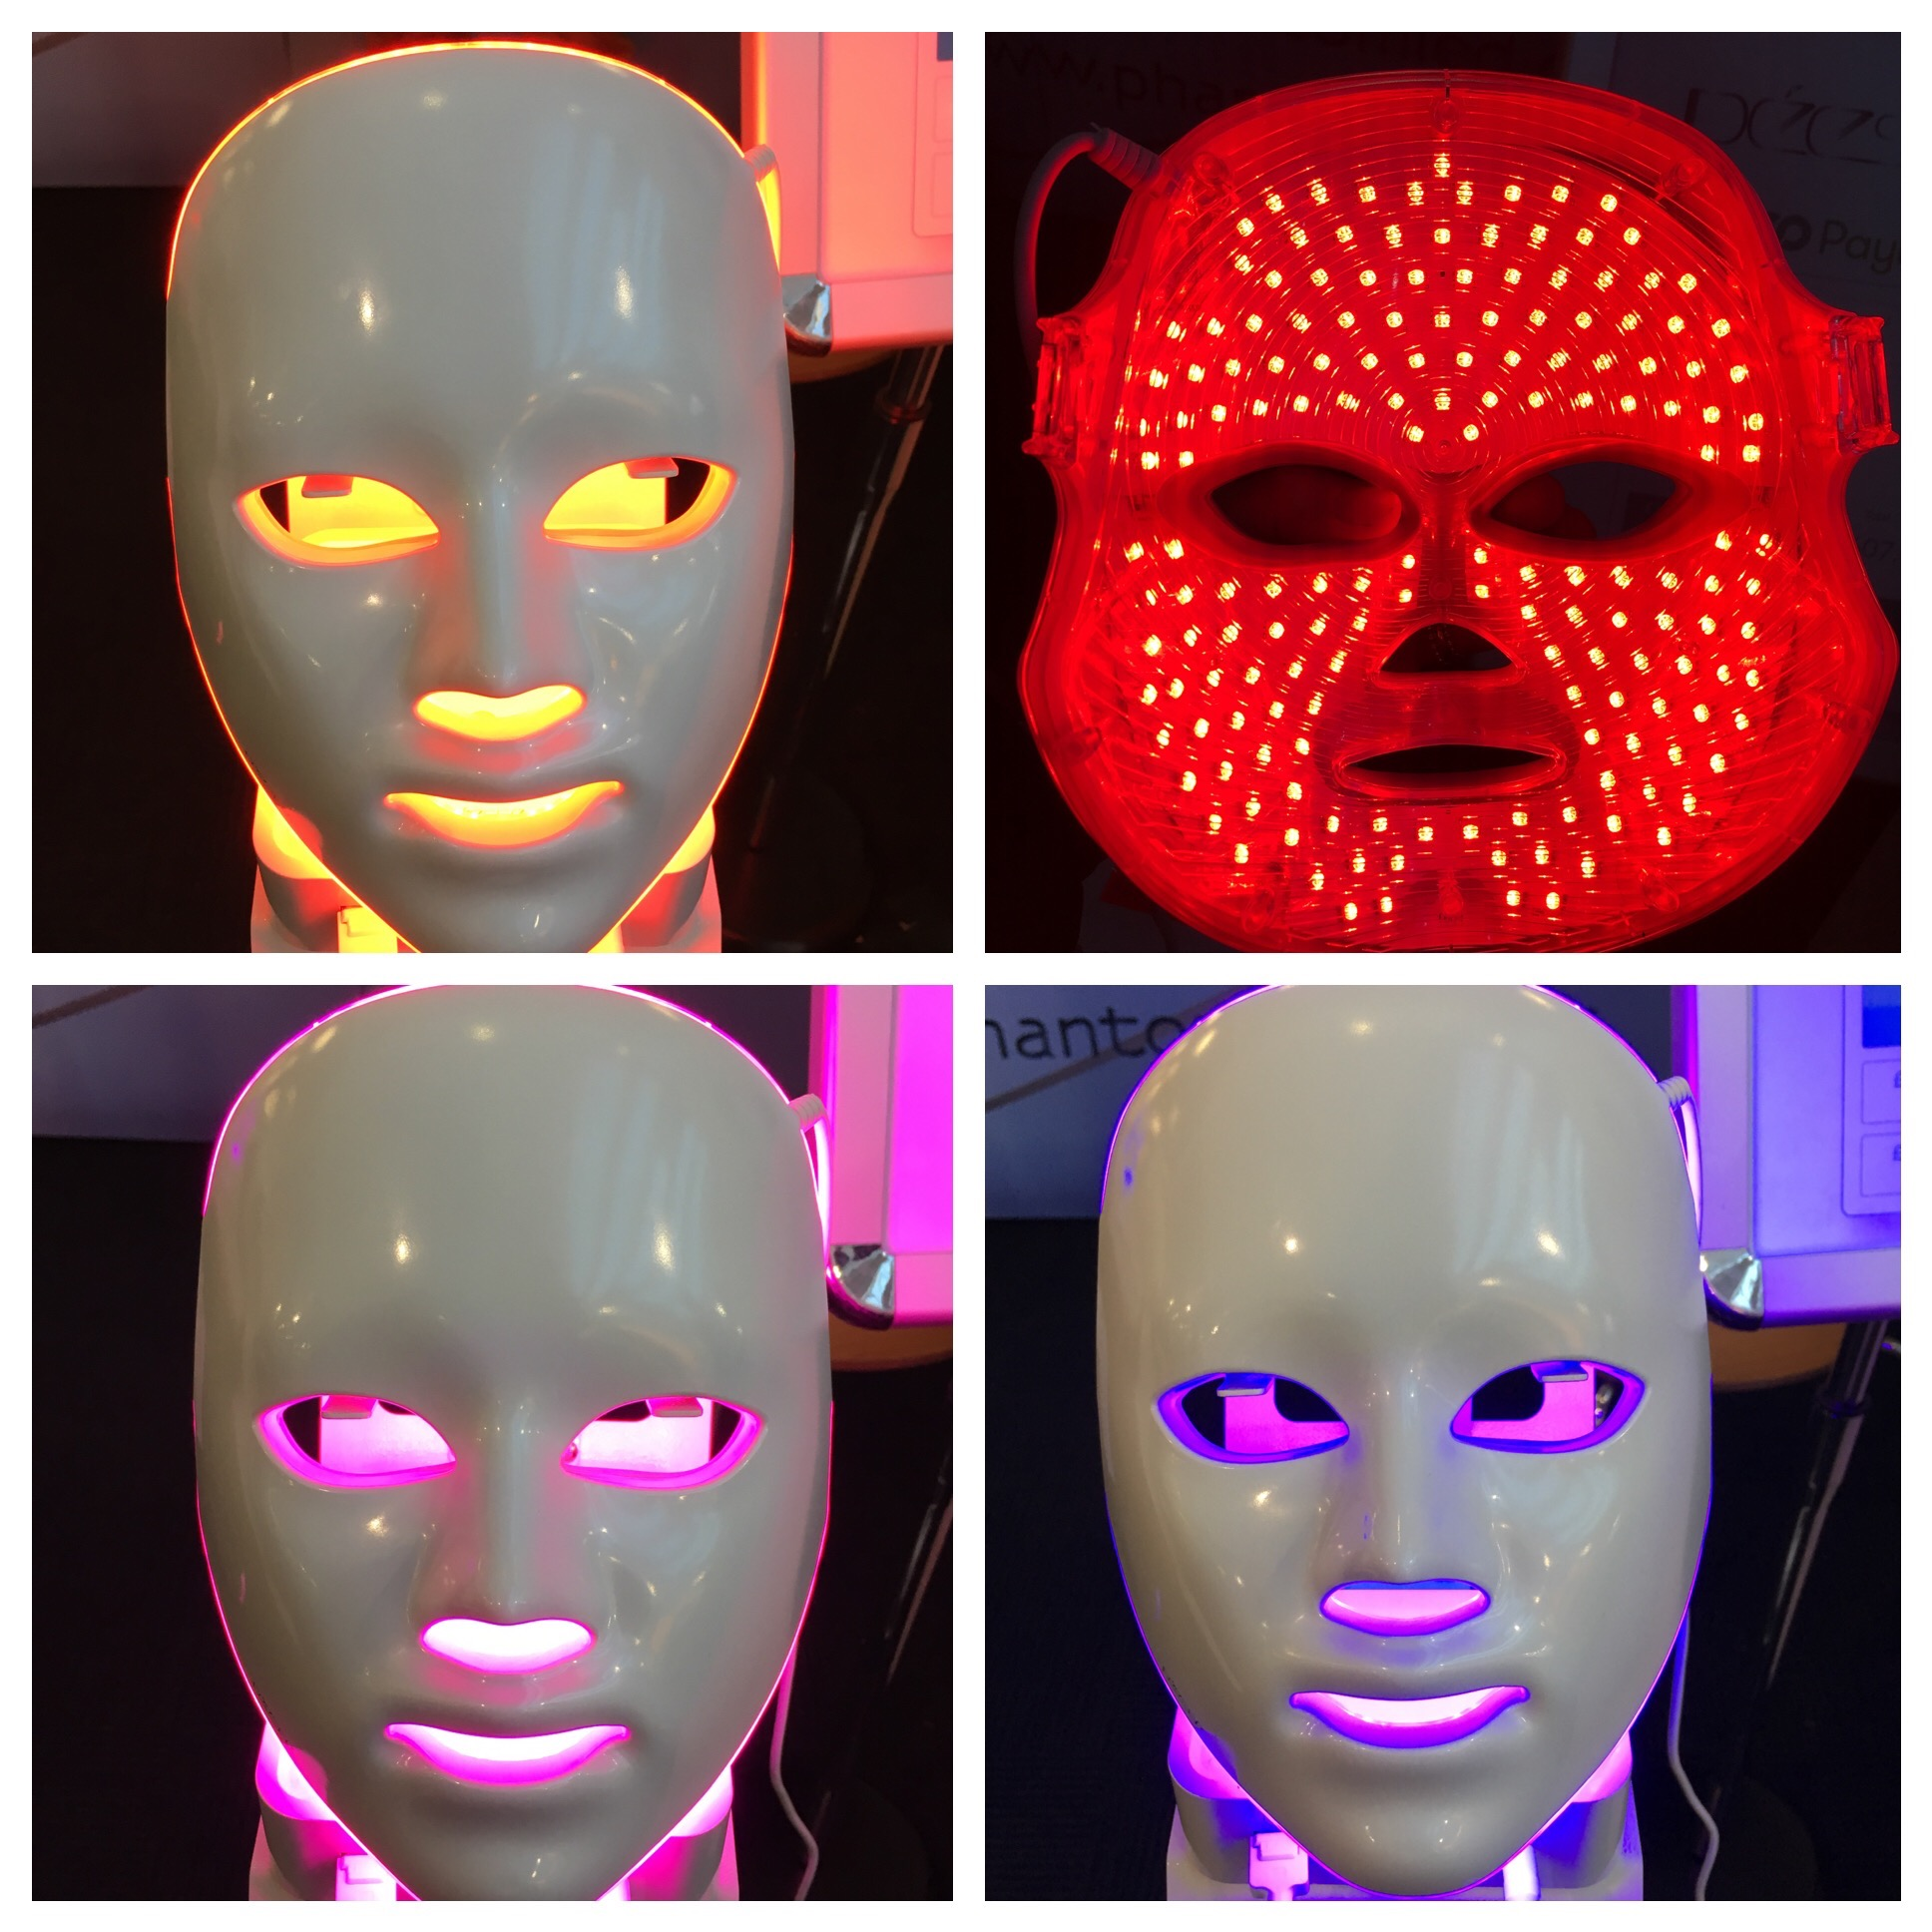 Get your glow on: the Deese LED light mask.